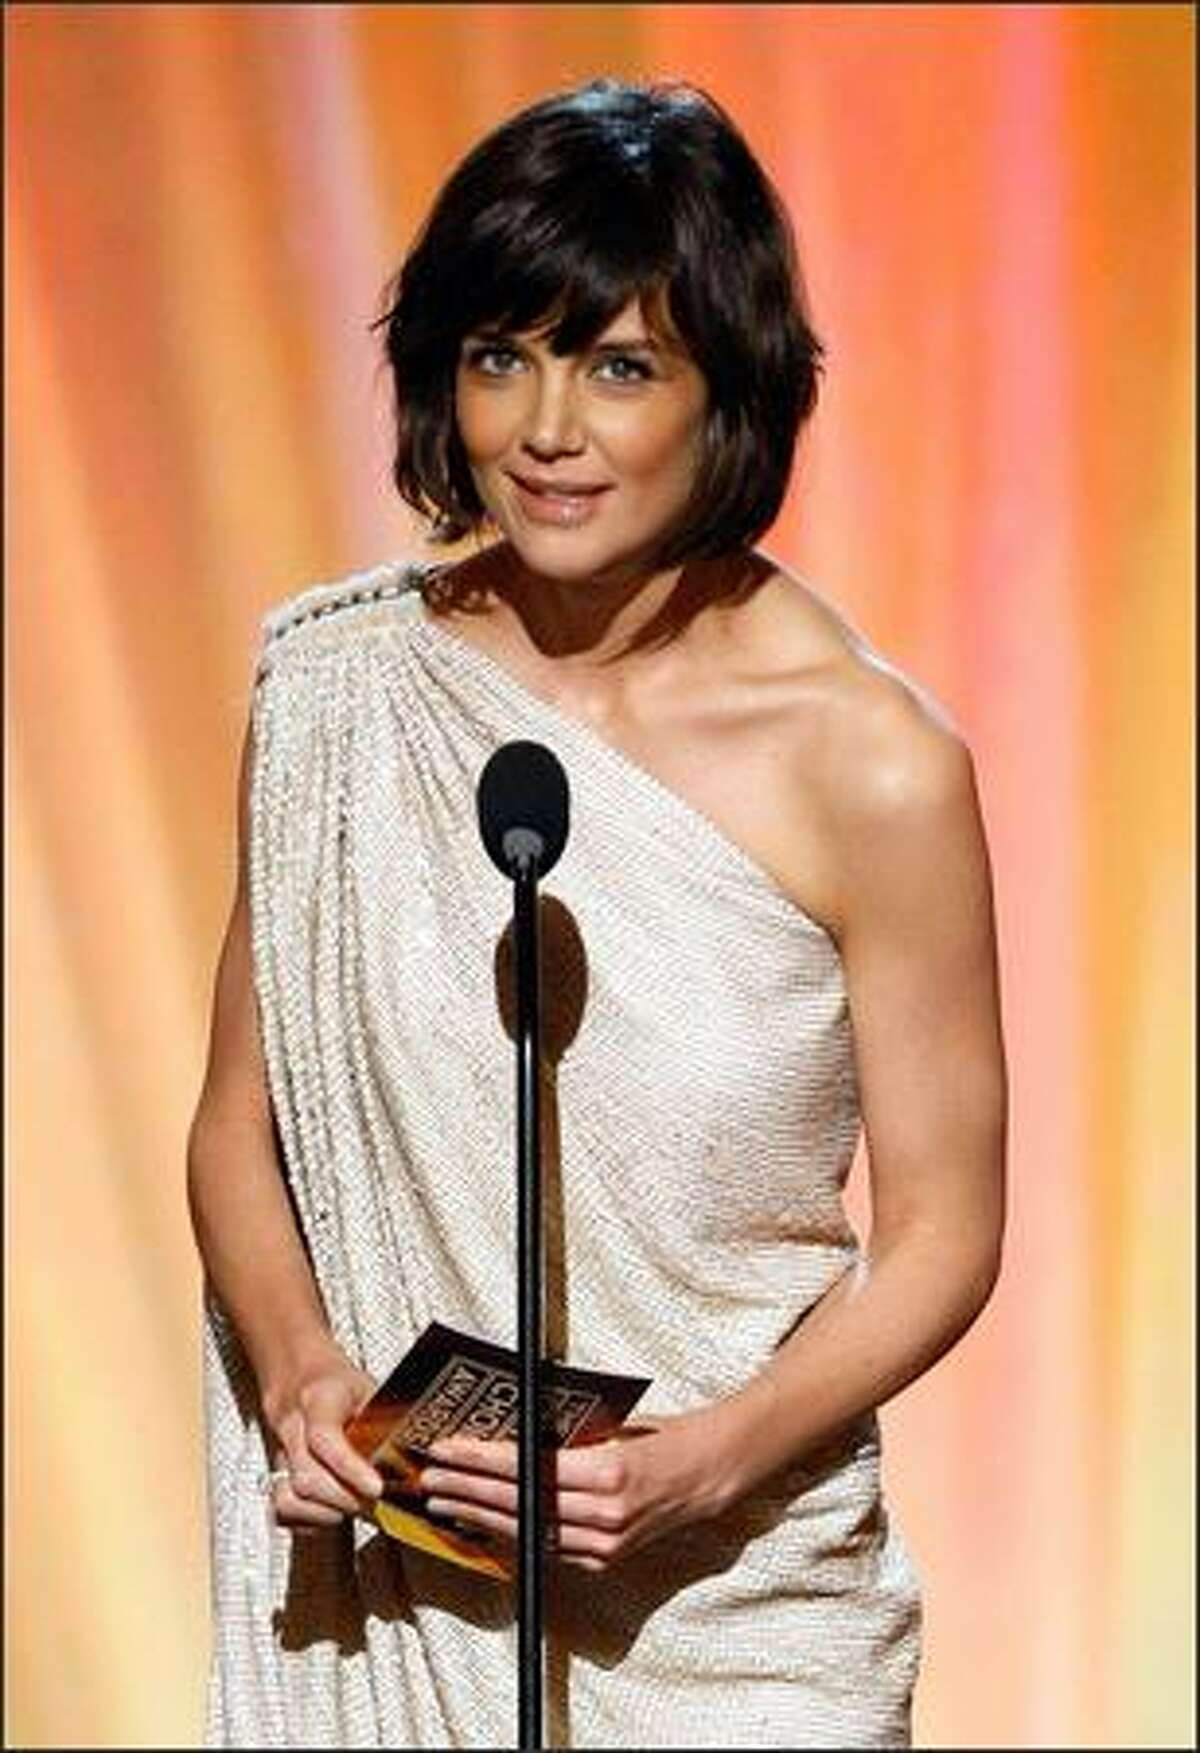 Actress Katie Holmes presents the Comedy Movie Award onstage during the 13th annual Critics' Choice Awards held at the Santa Monica Civic Auditorium on Monday in Santa Monica, Calif.